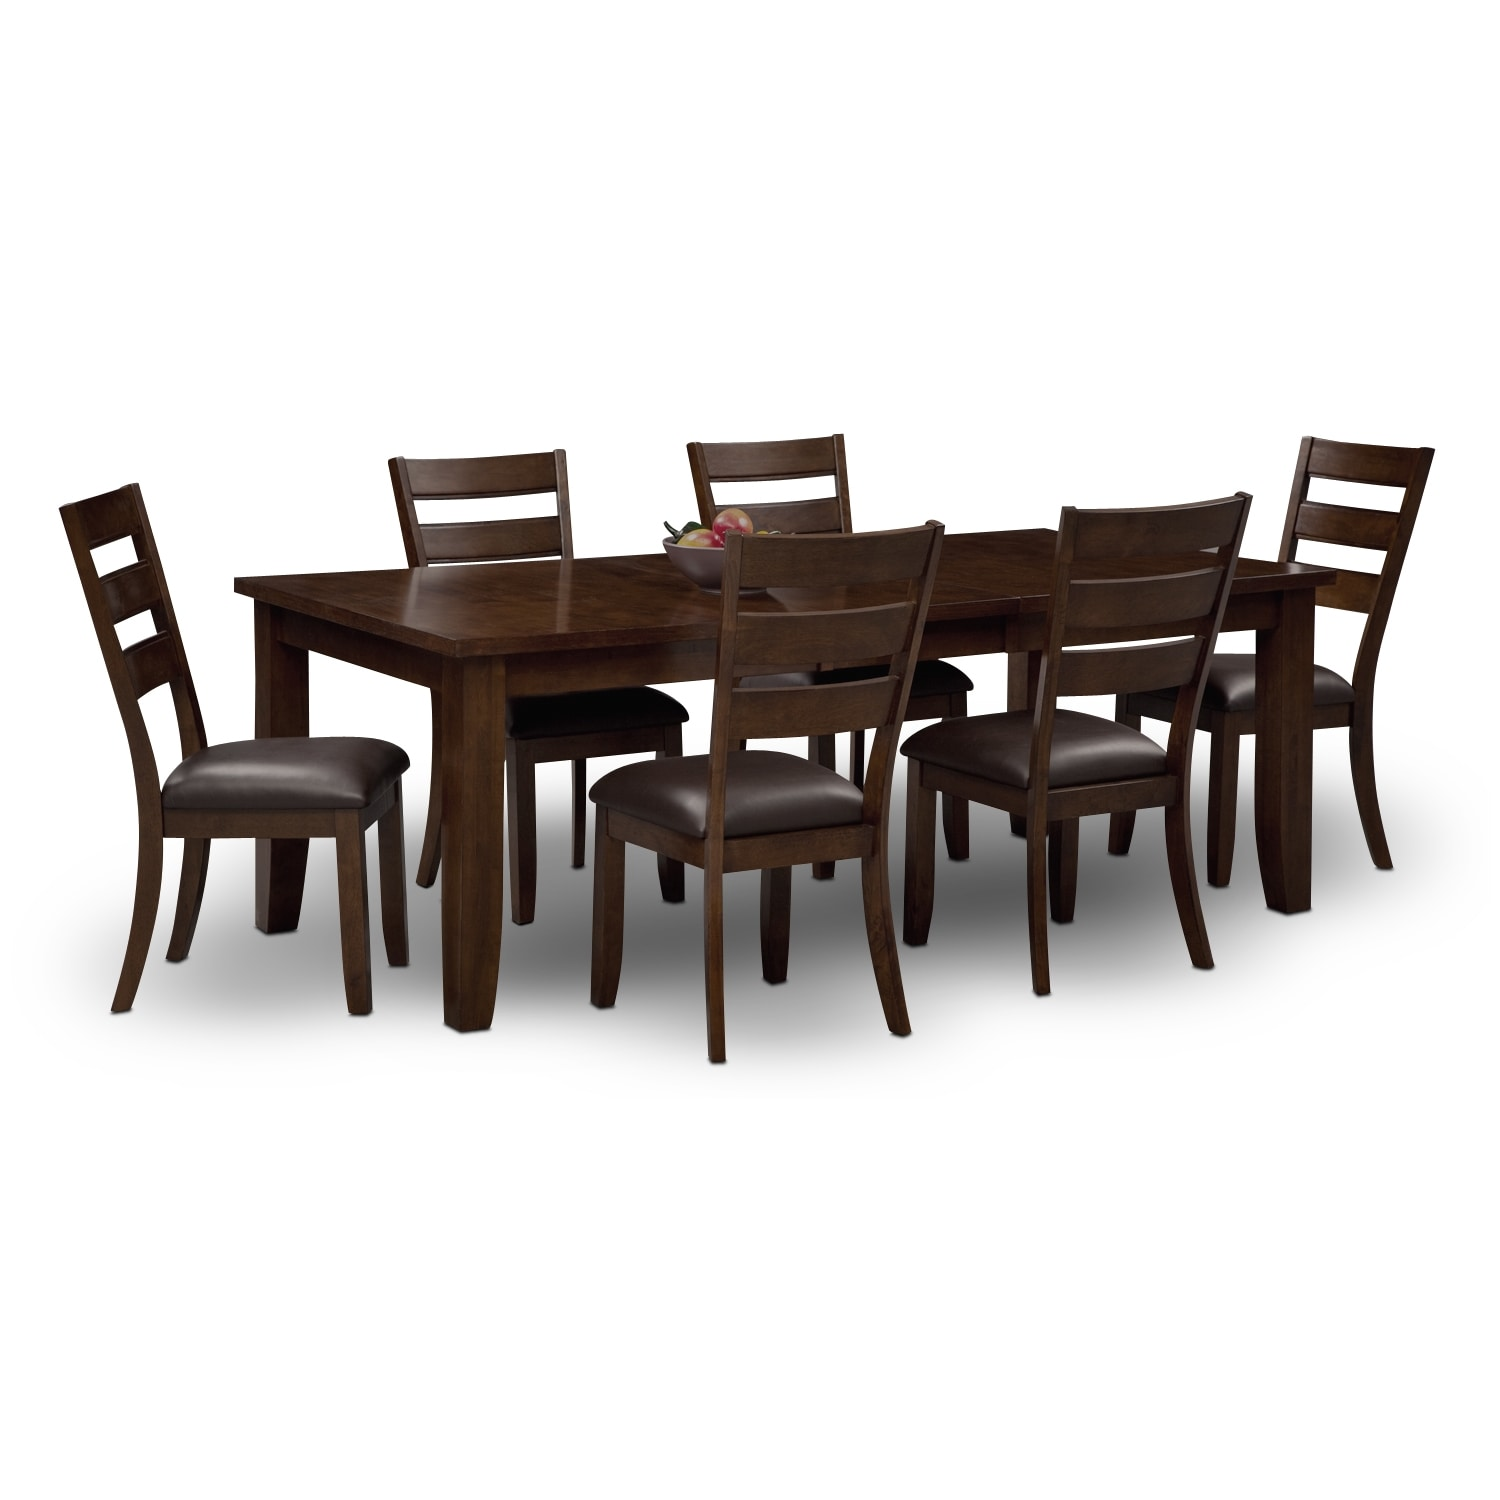 Abaco table and 6 chairs brown value city furniture for Table and chairs furniture